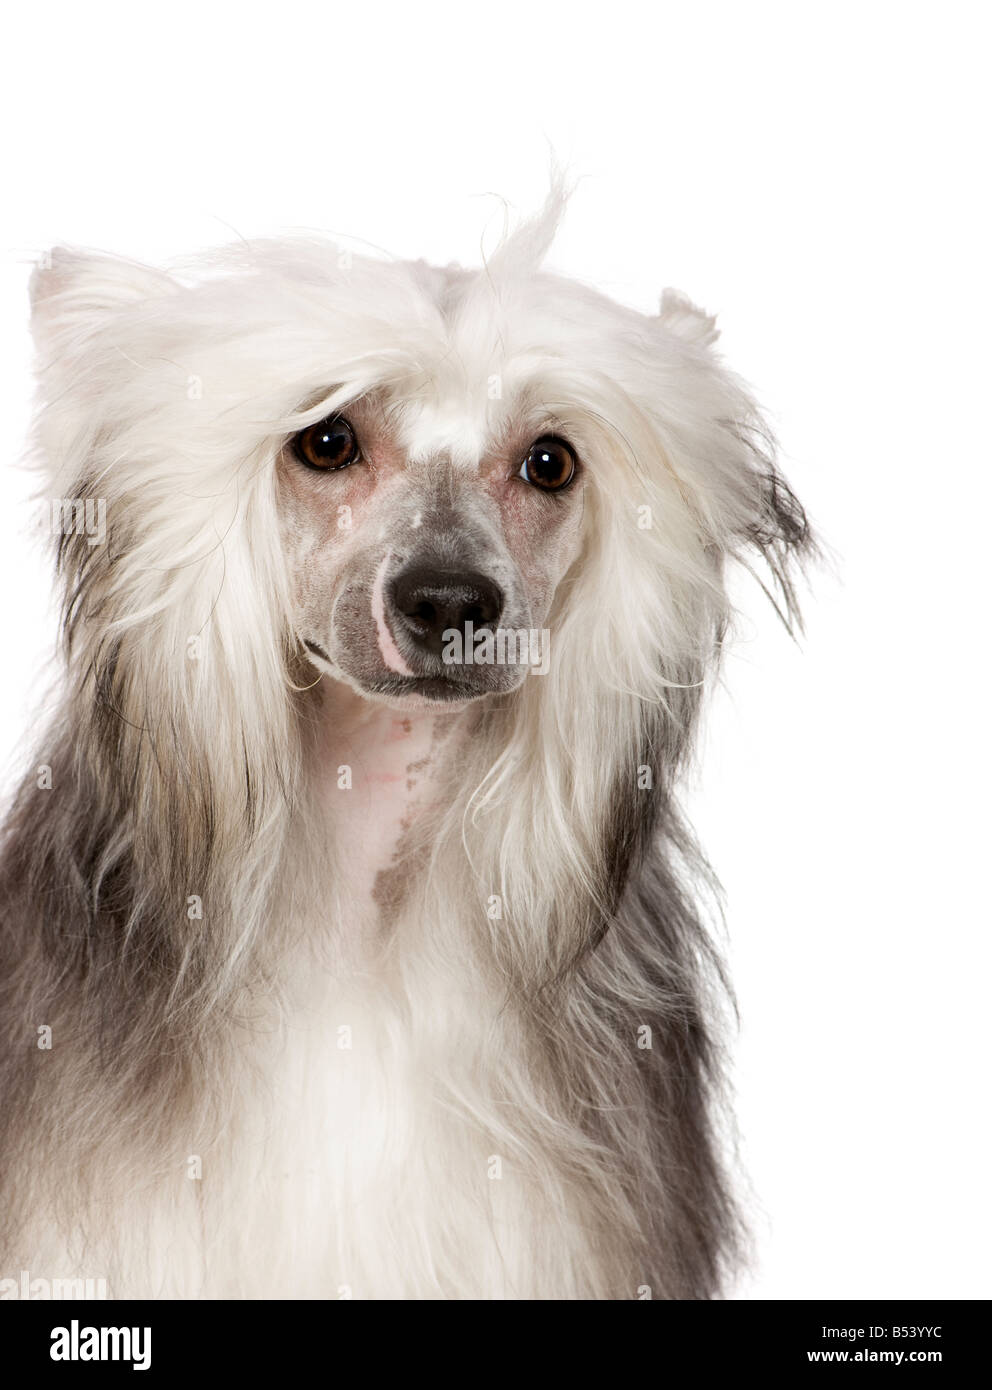 chinese crested dog in front of a white background - Stock Image